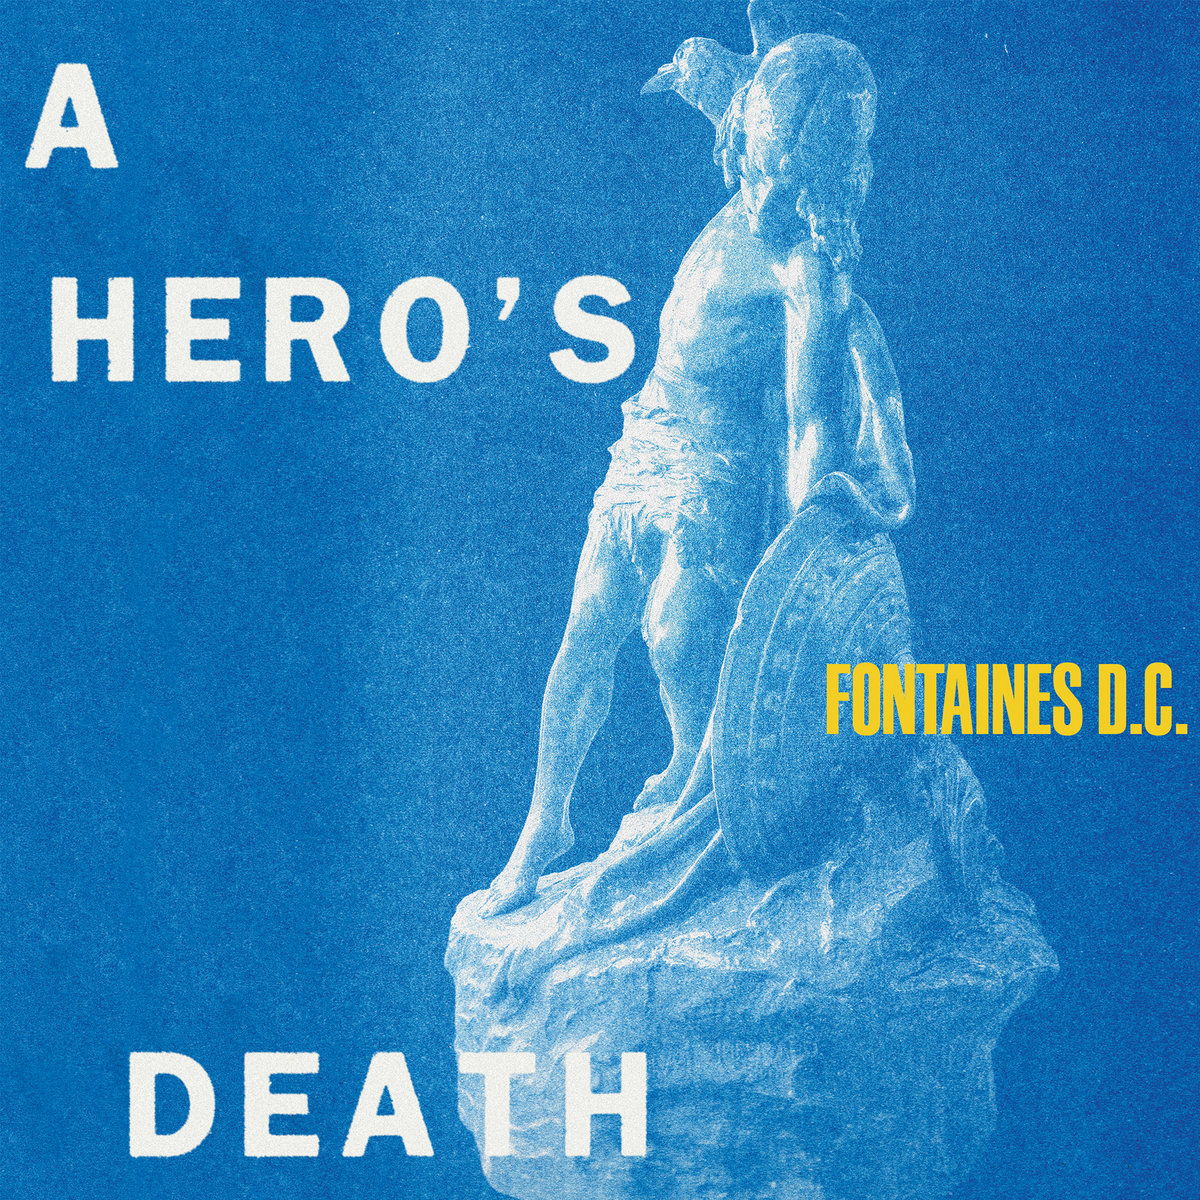 fontaines d.c., a hero's death